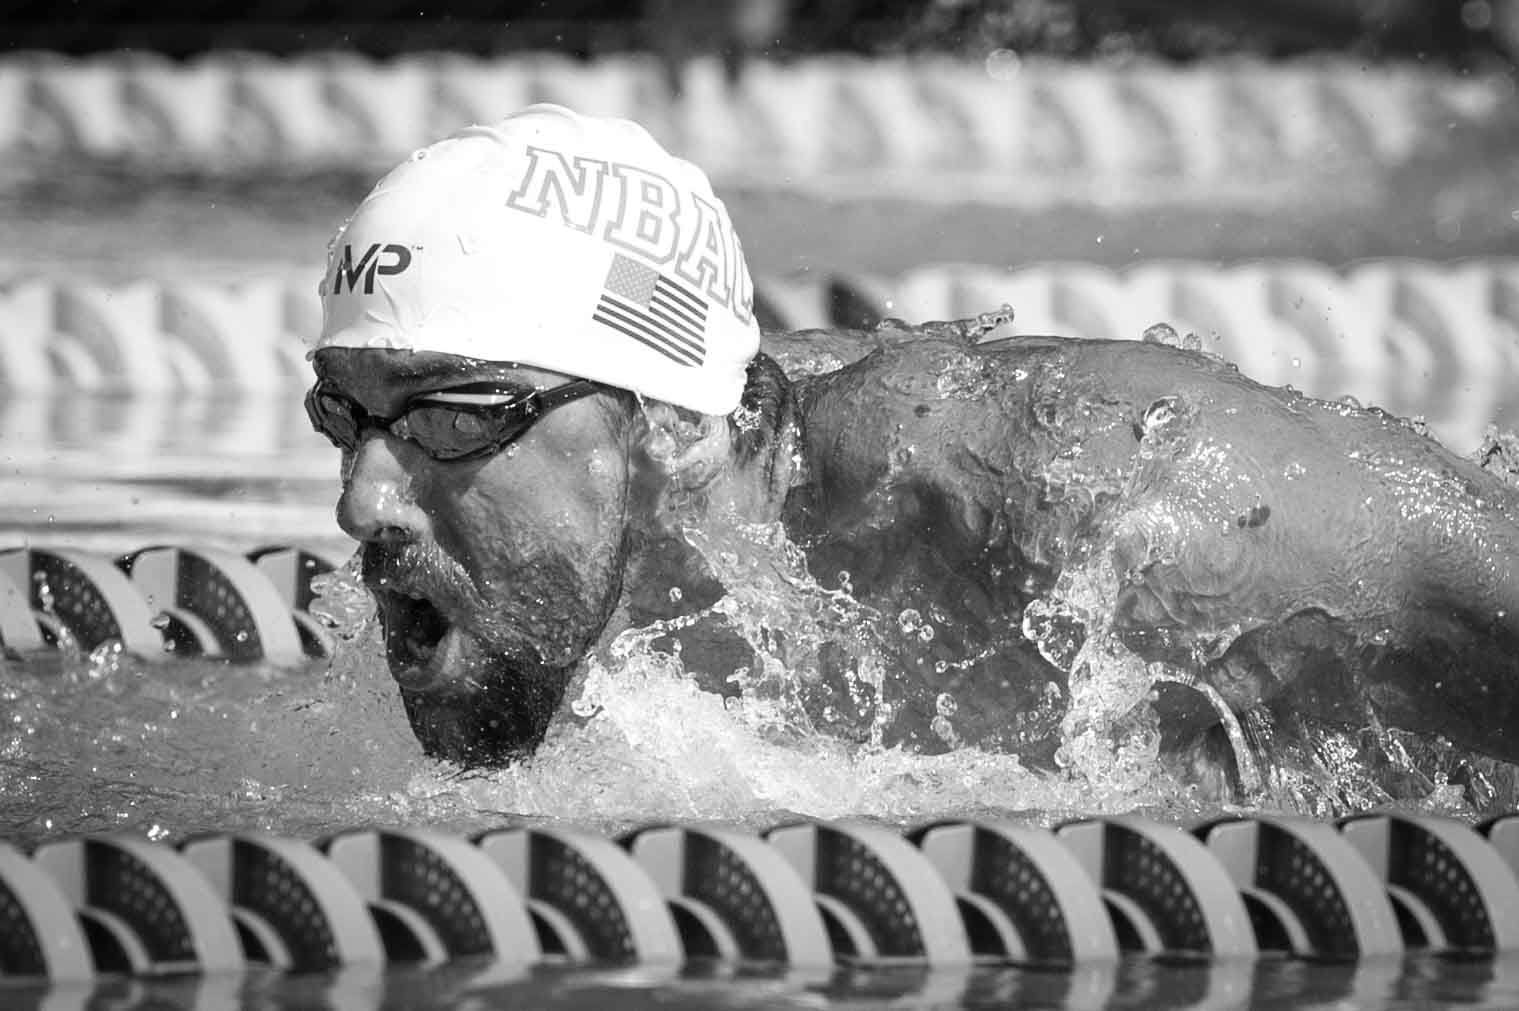 Shout from the Stands: Michael Phelps Numerology, Life Path